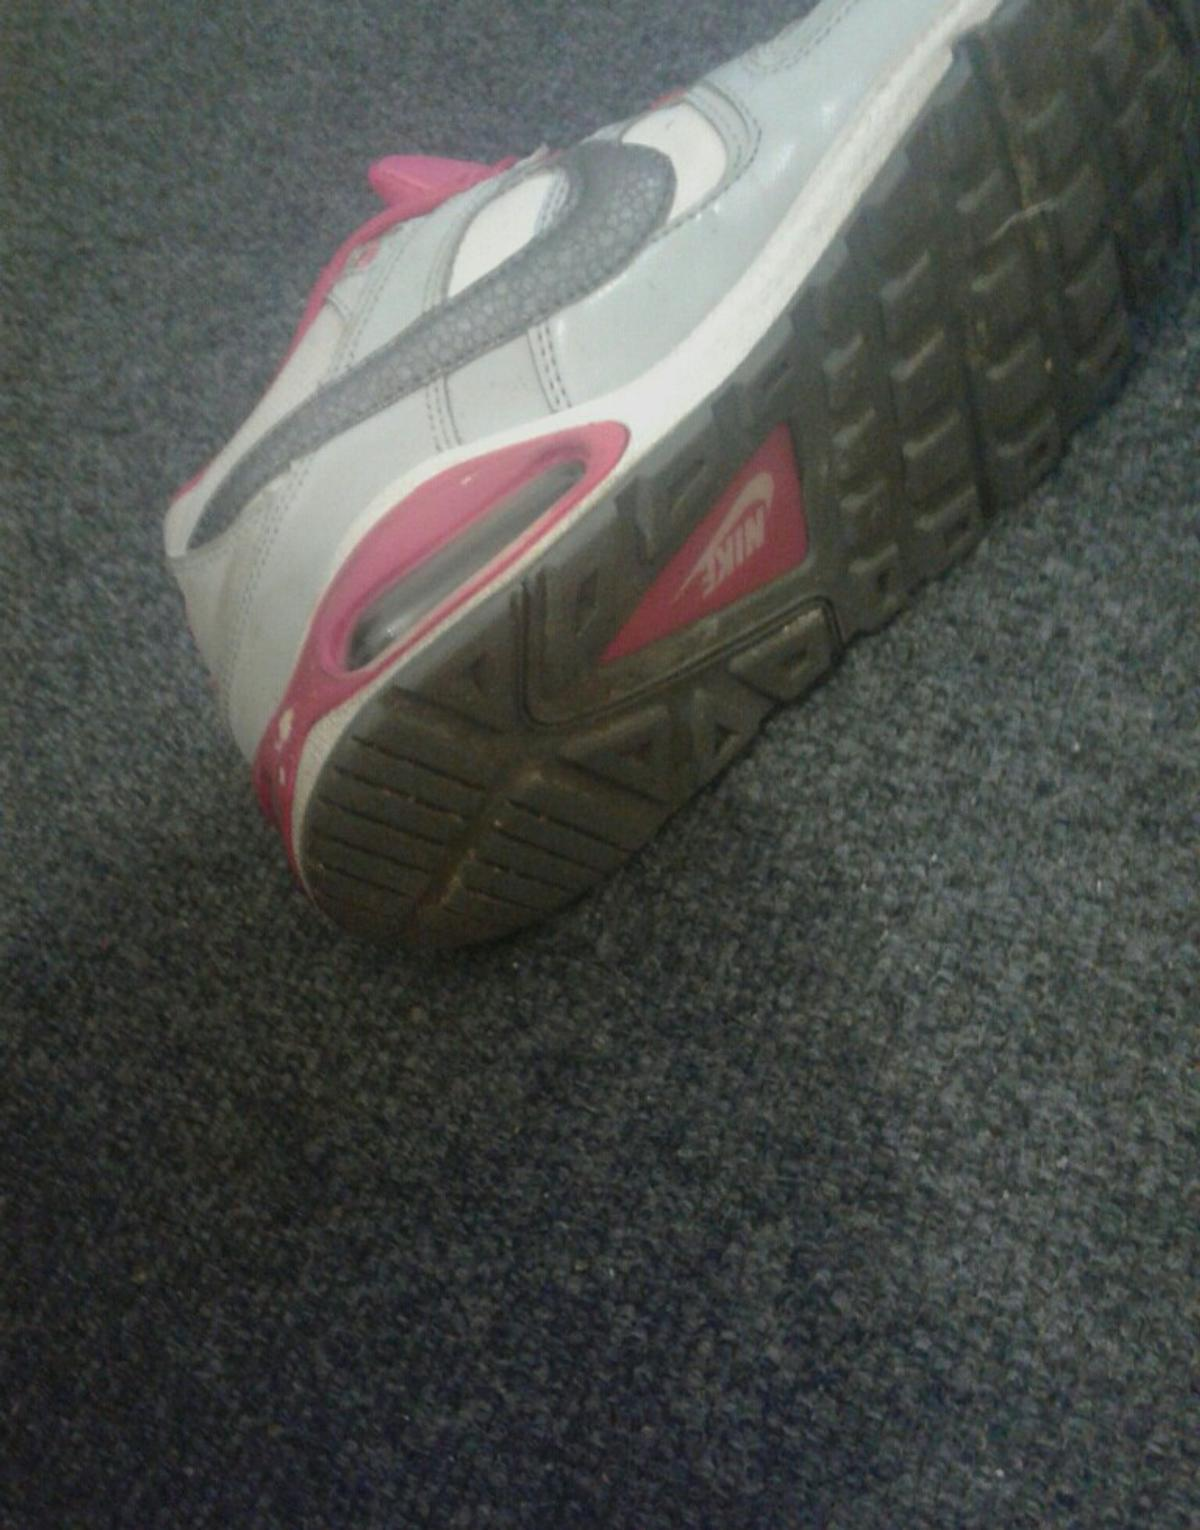 Nike air max n. 37.5 in 48018 Faenza for €35.00 for sale   Shpock